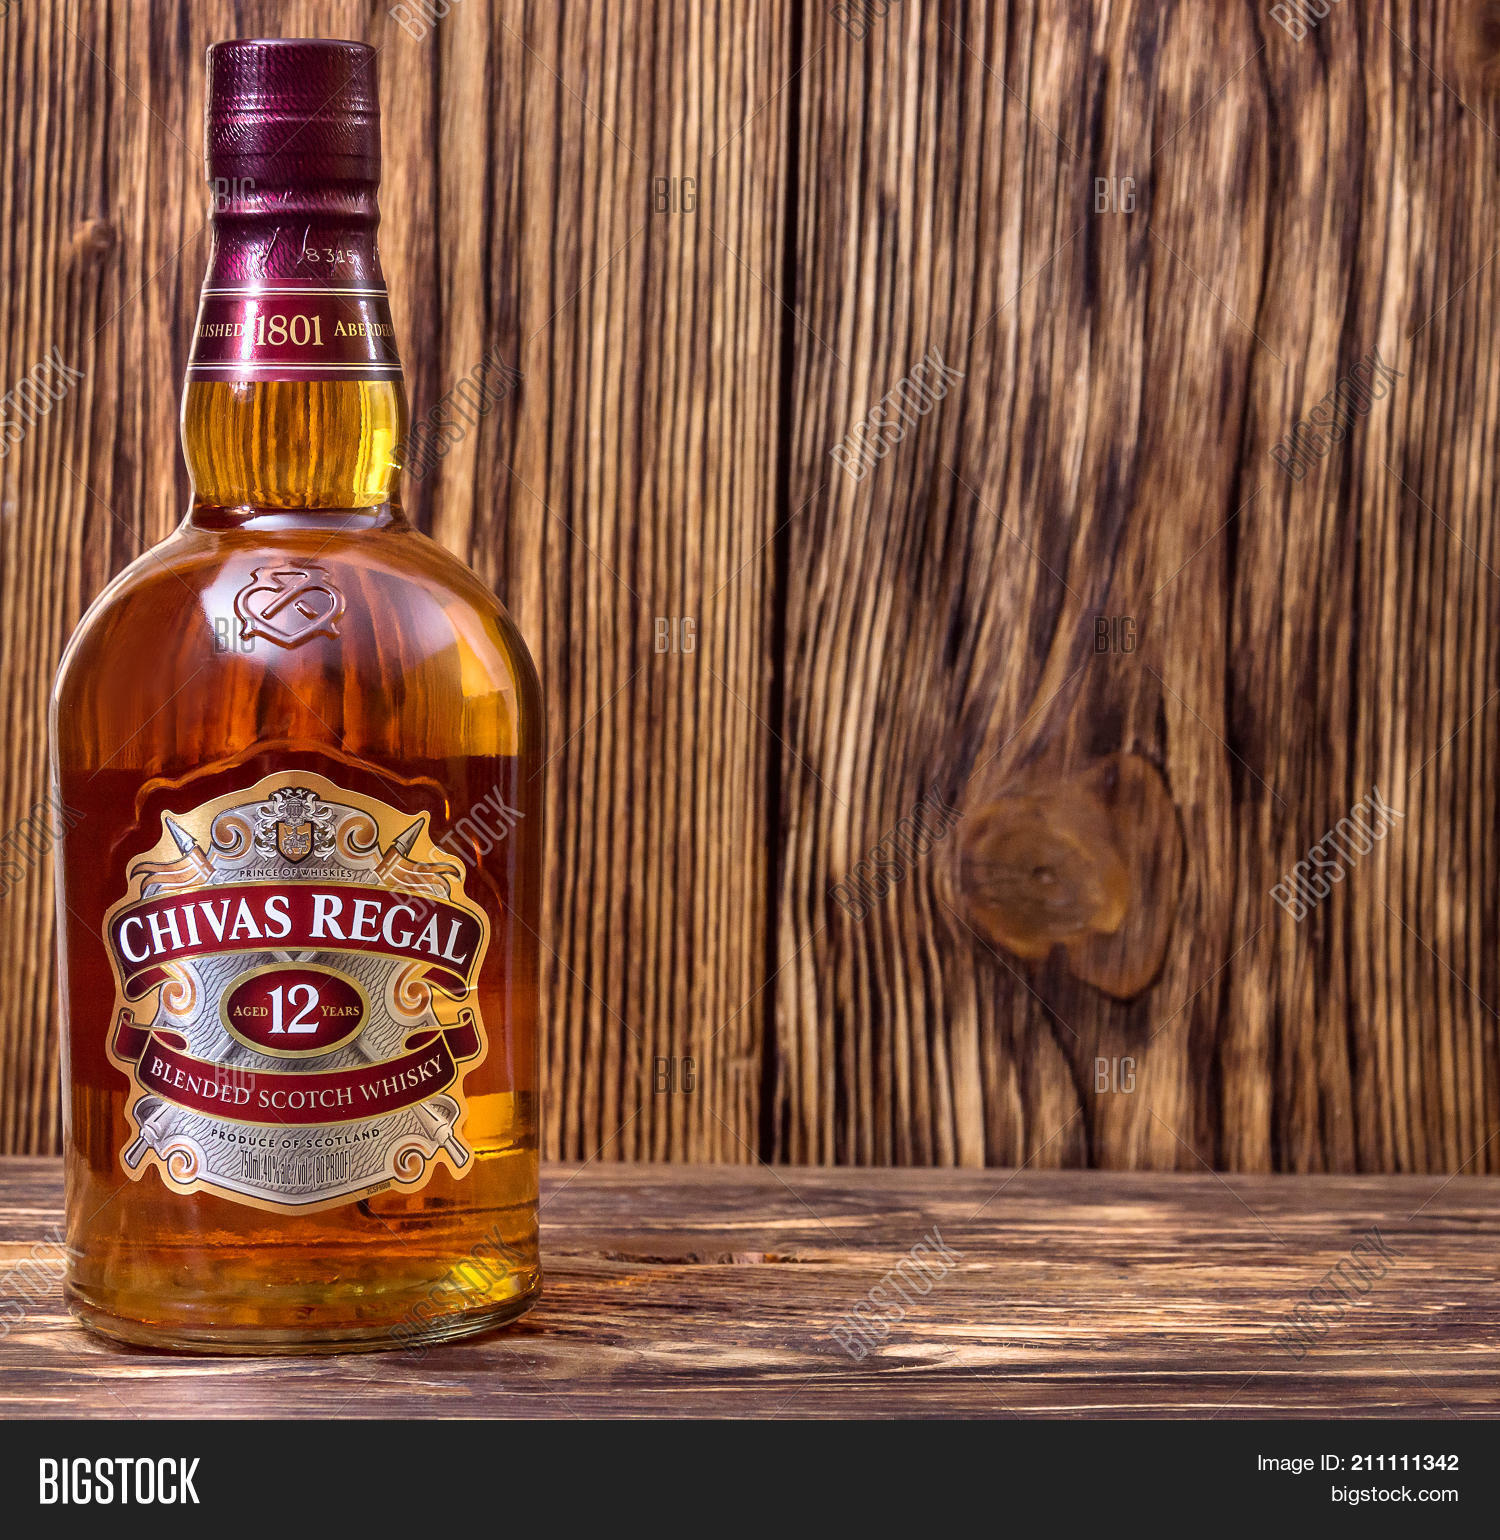 Ternopil ukraine august 26 2017 image photo bigstock ternopil ukraine august 26 2017 bottle of blended scotch whisky chivas regal 12 voltagebd Images